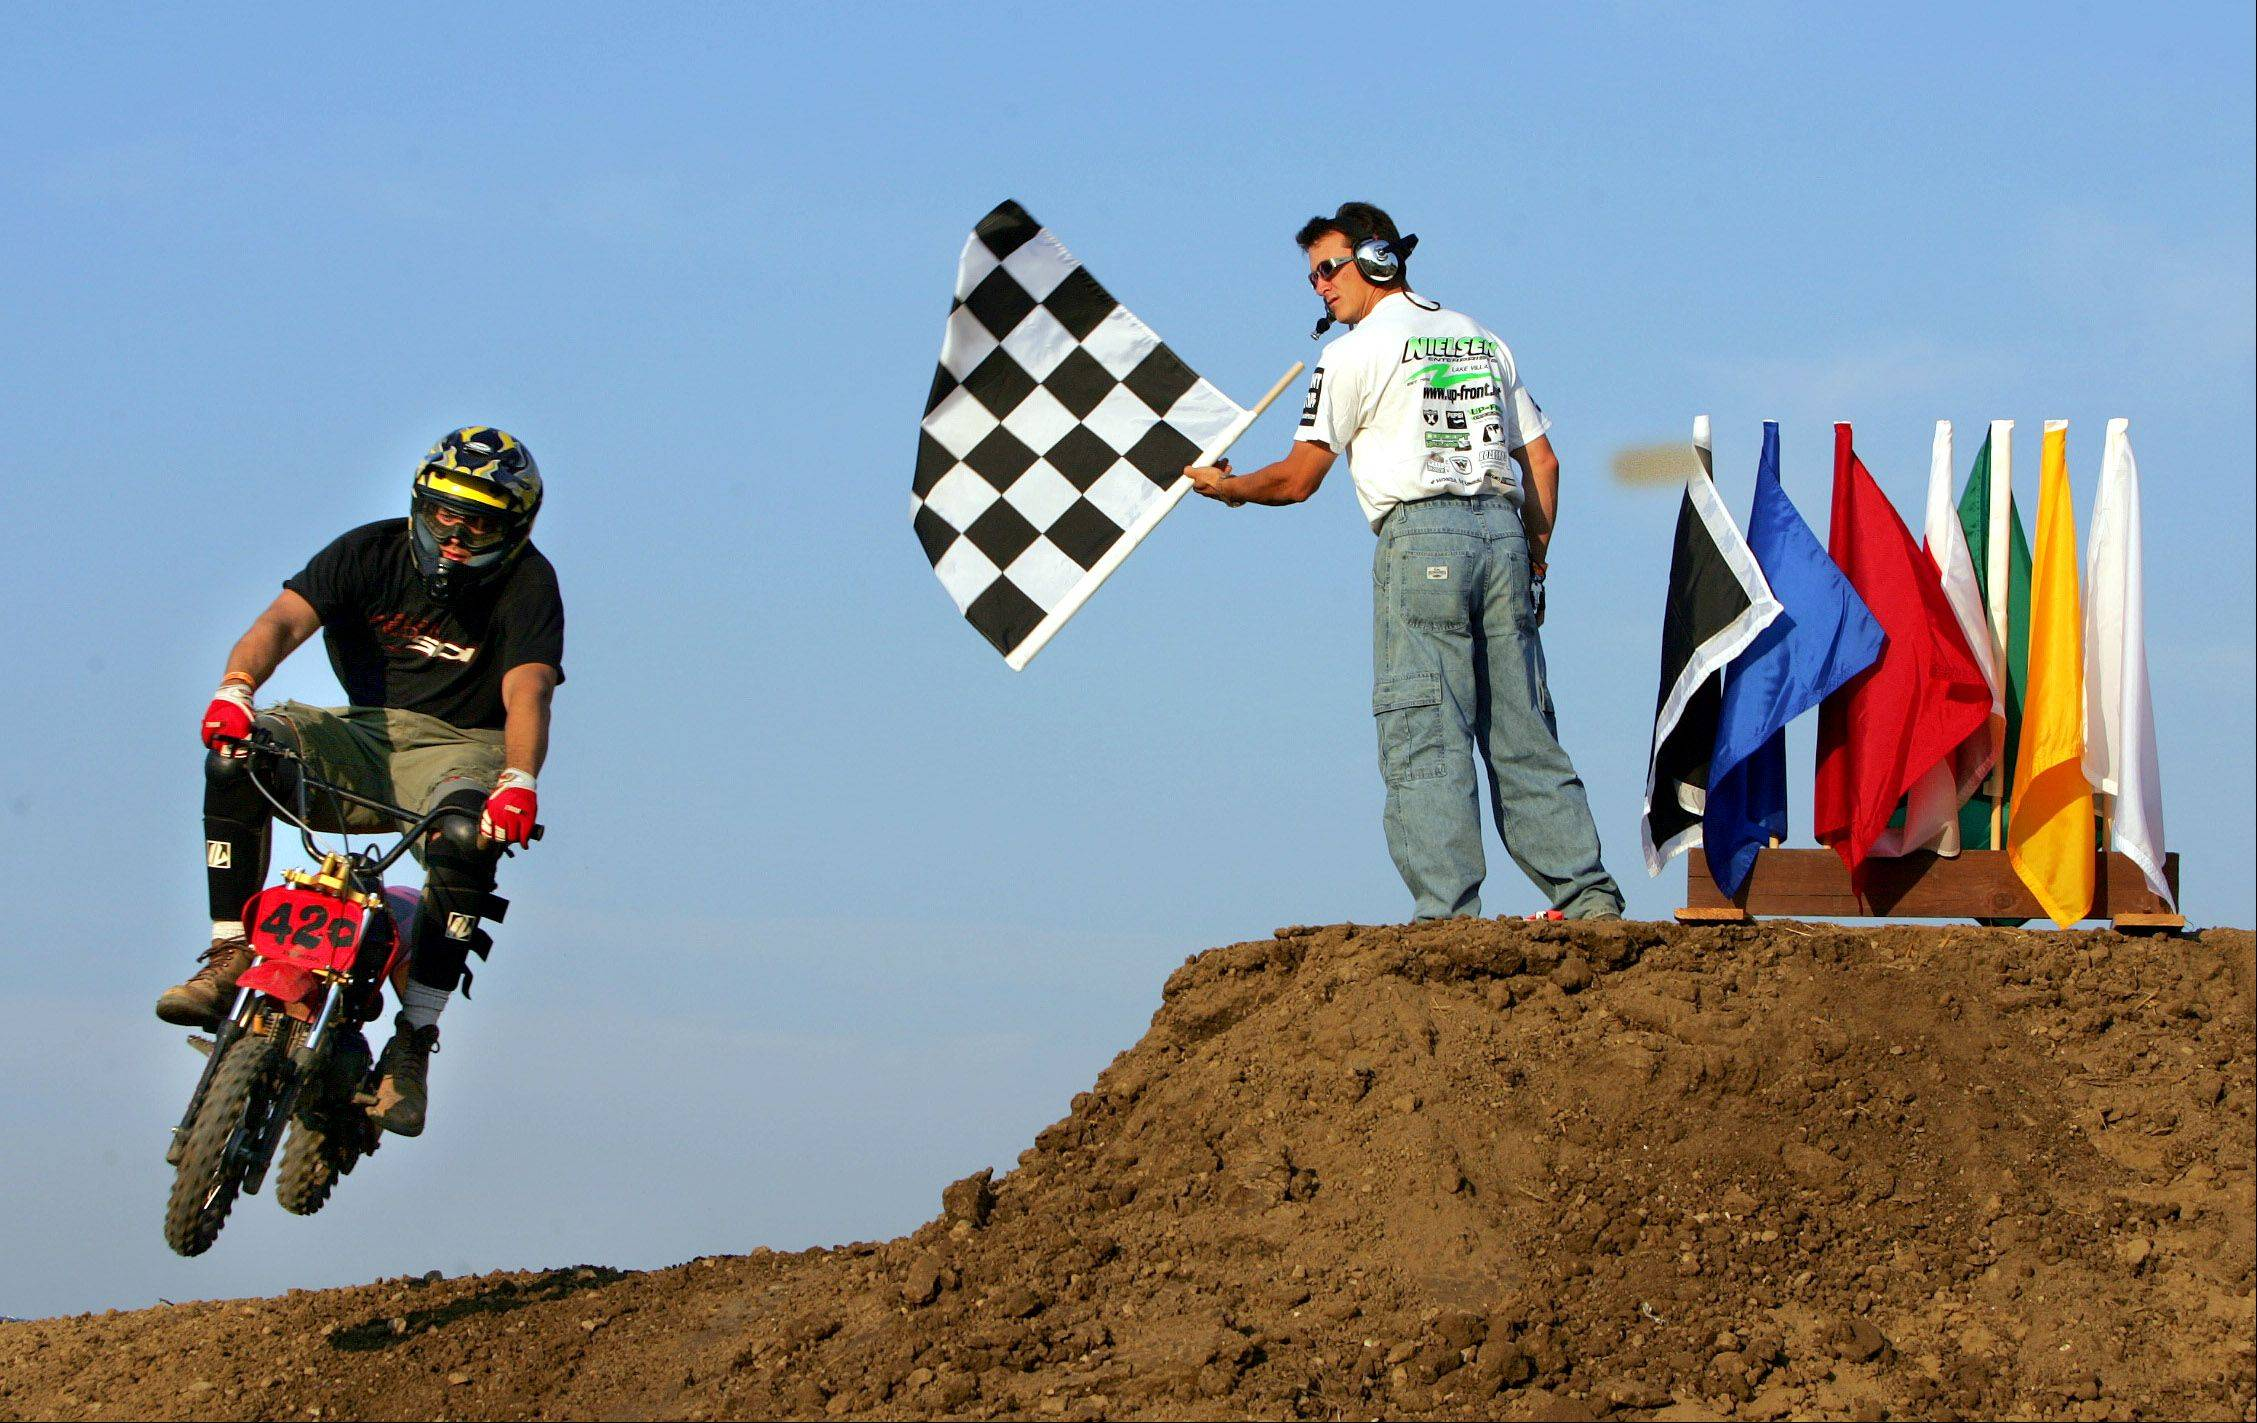 Champion motocross riders unleash high-flying skills at DuPage County Fair